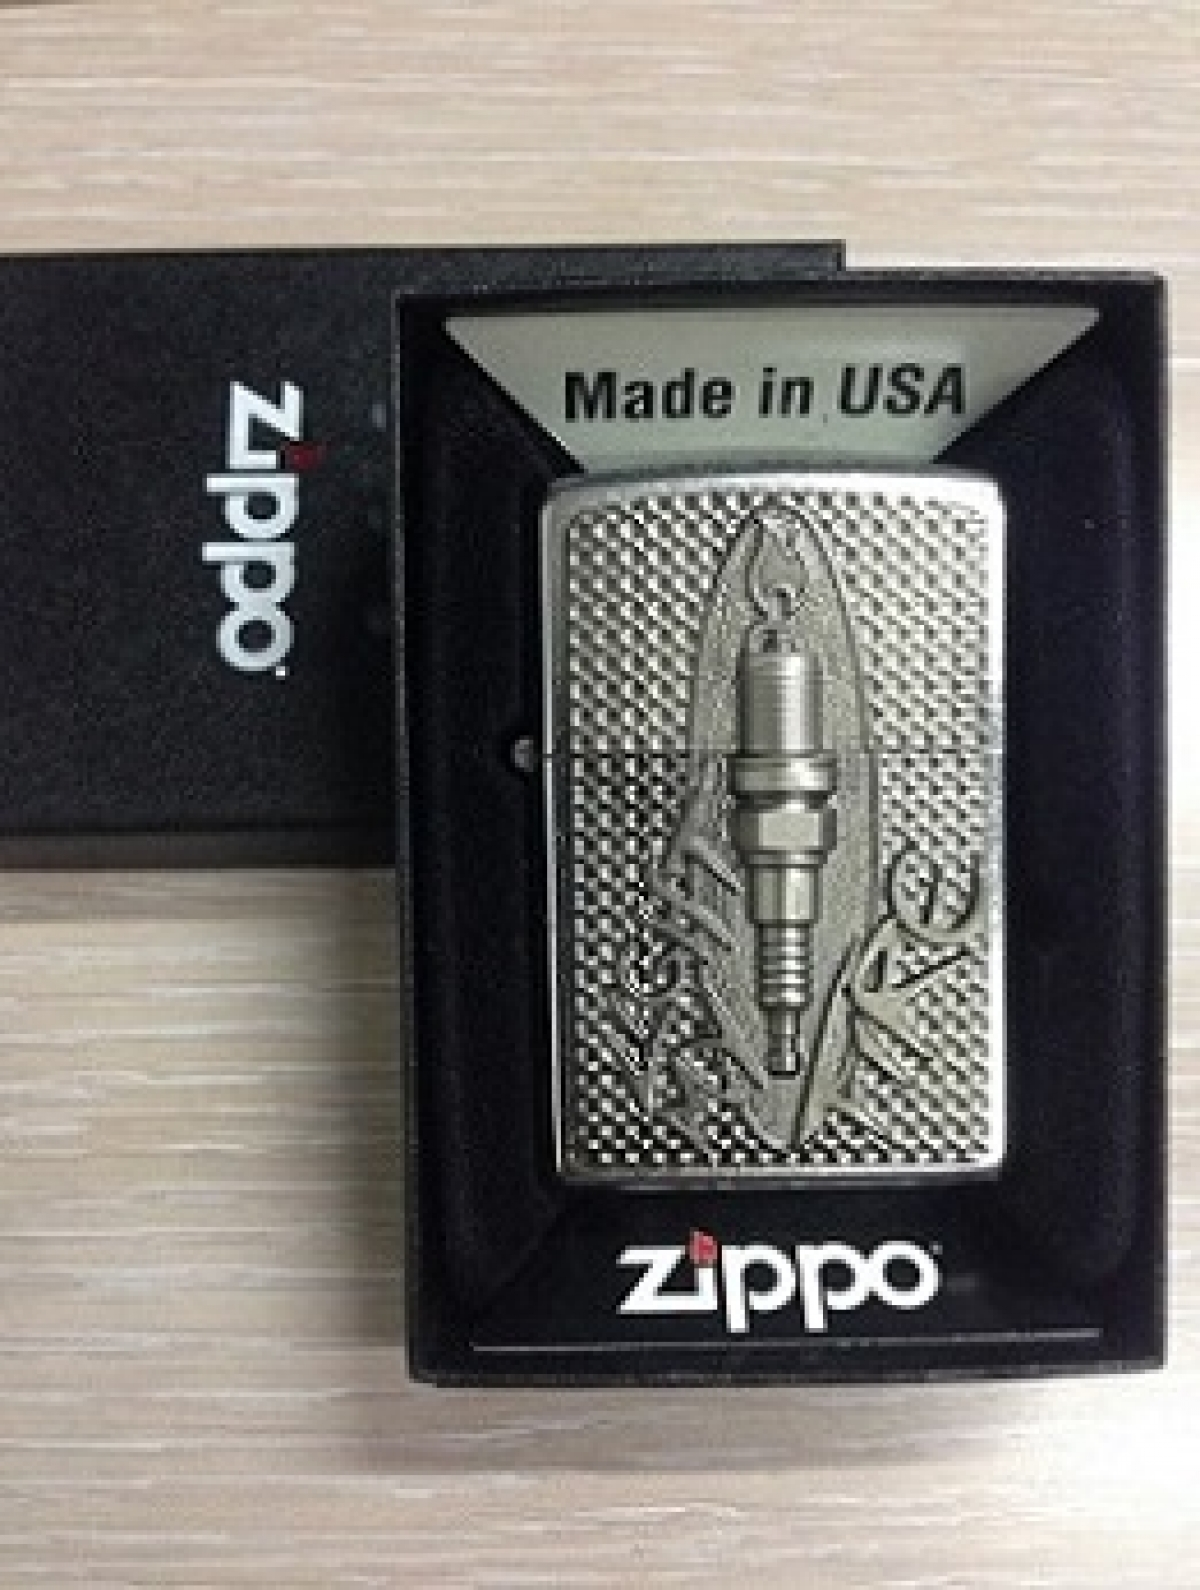 Zippo Pocket Lighter Spark Plug Fire